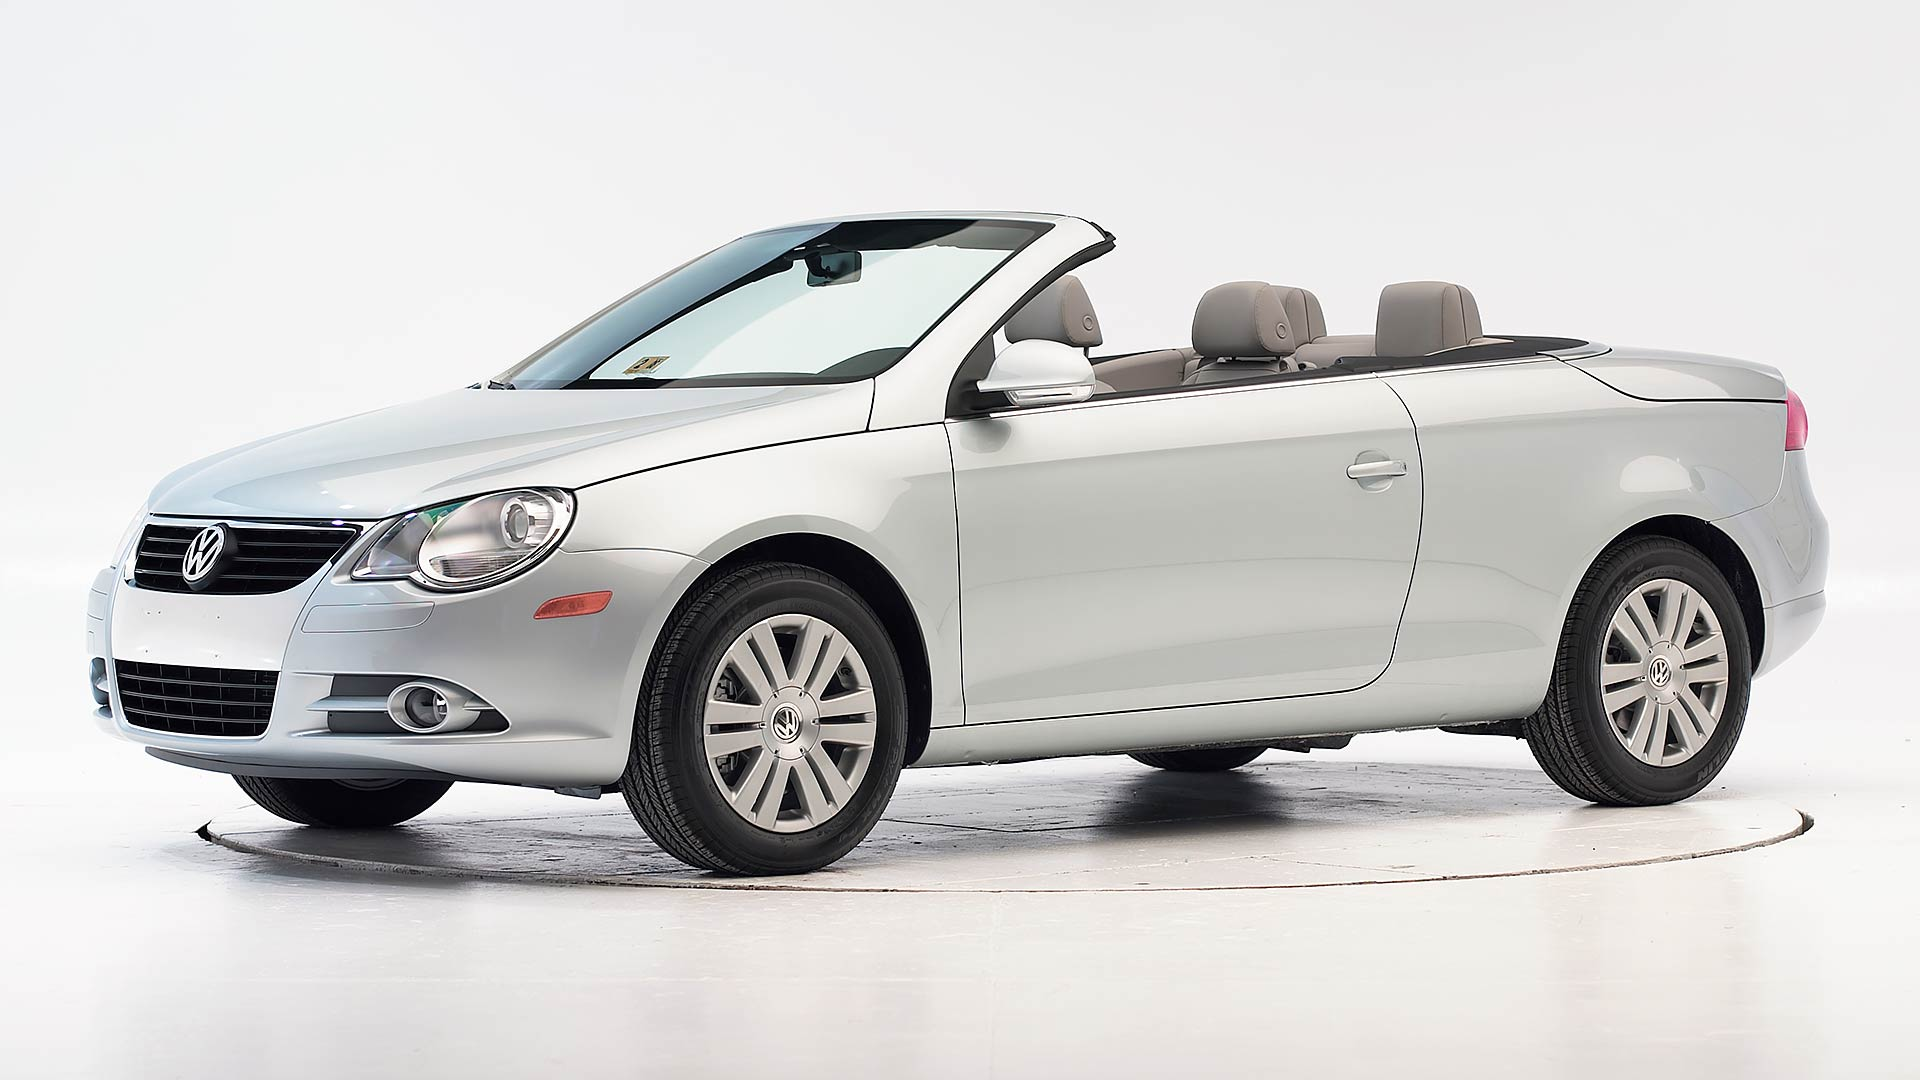 2014 Volkswagen Eos 2-door convertible